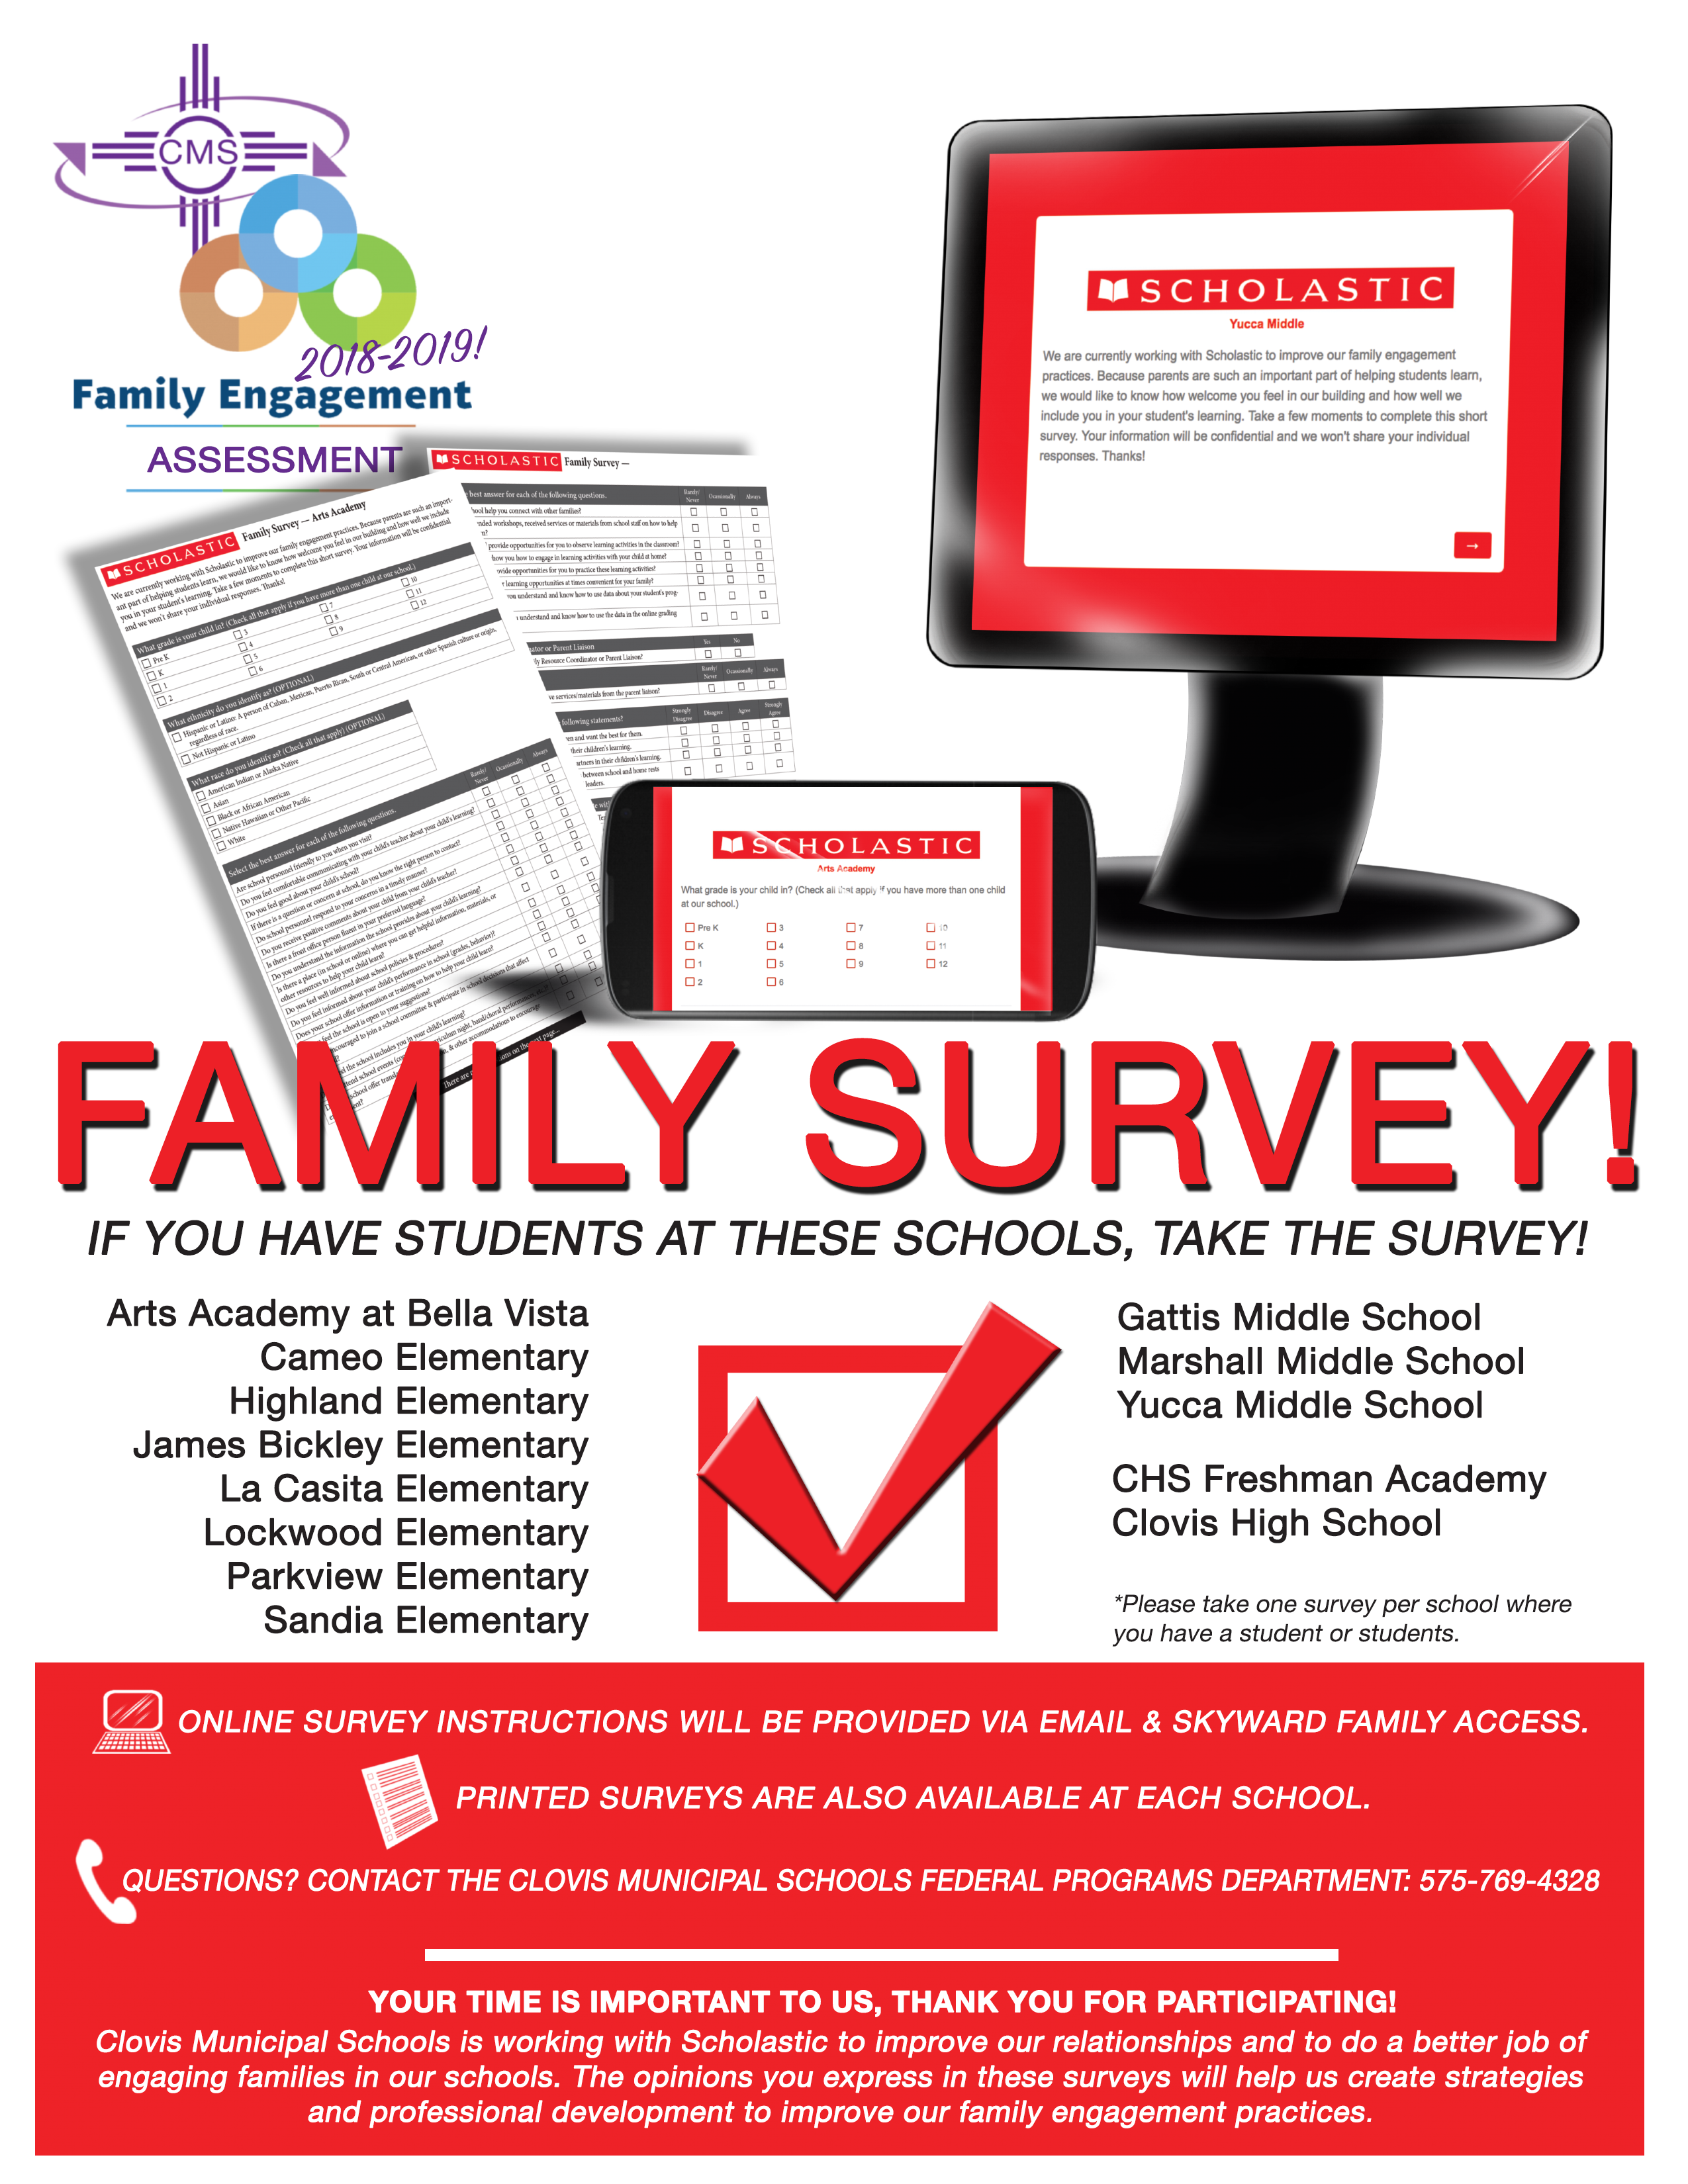 Image of text announcing Scholastic Survey